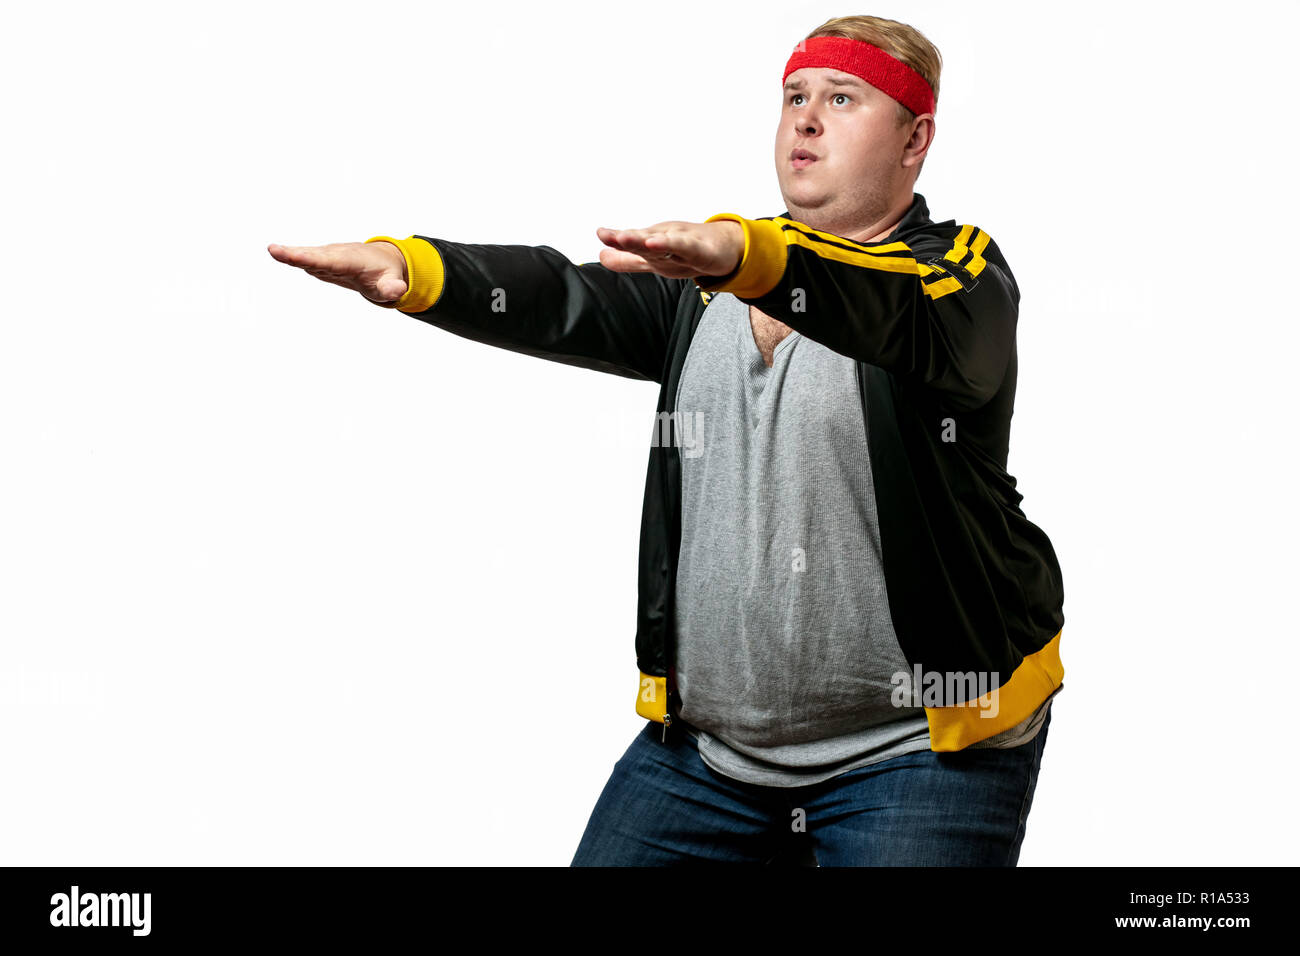 Overweight man resting, tired after training, with hand on forehead against white - Stock Image